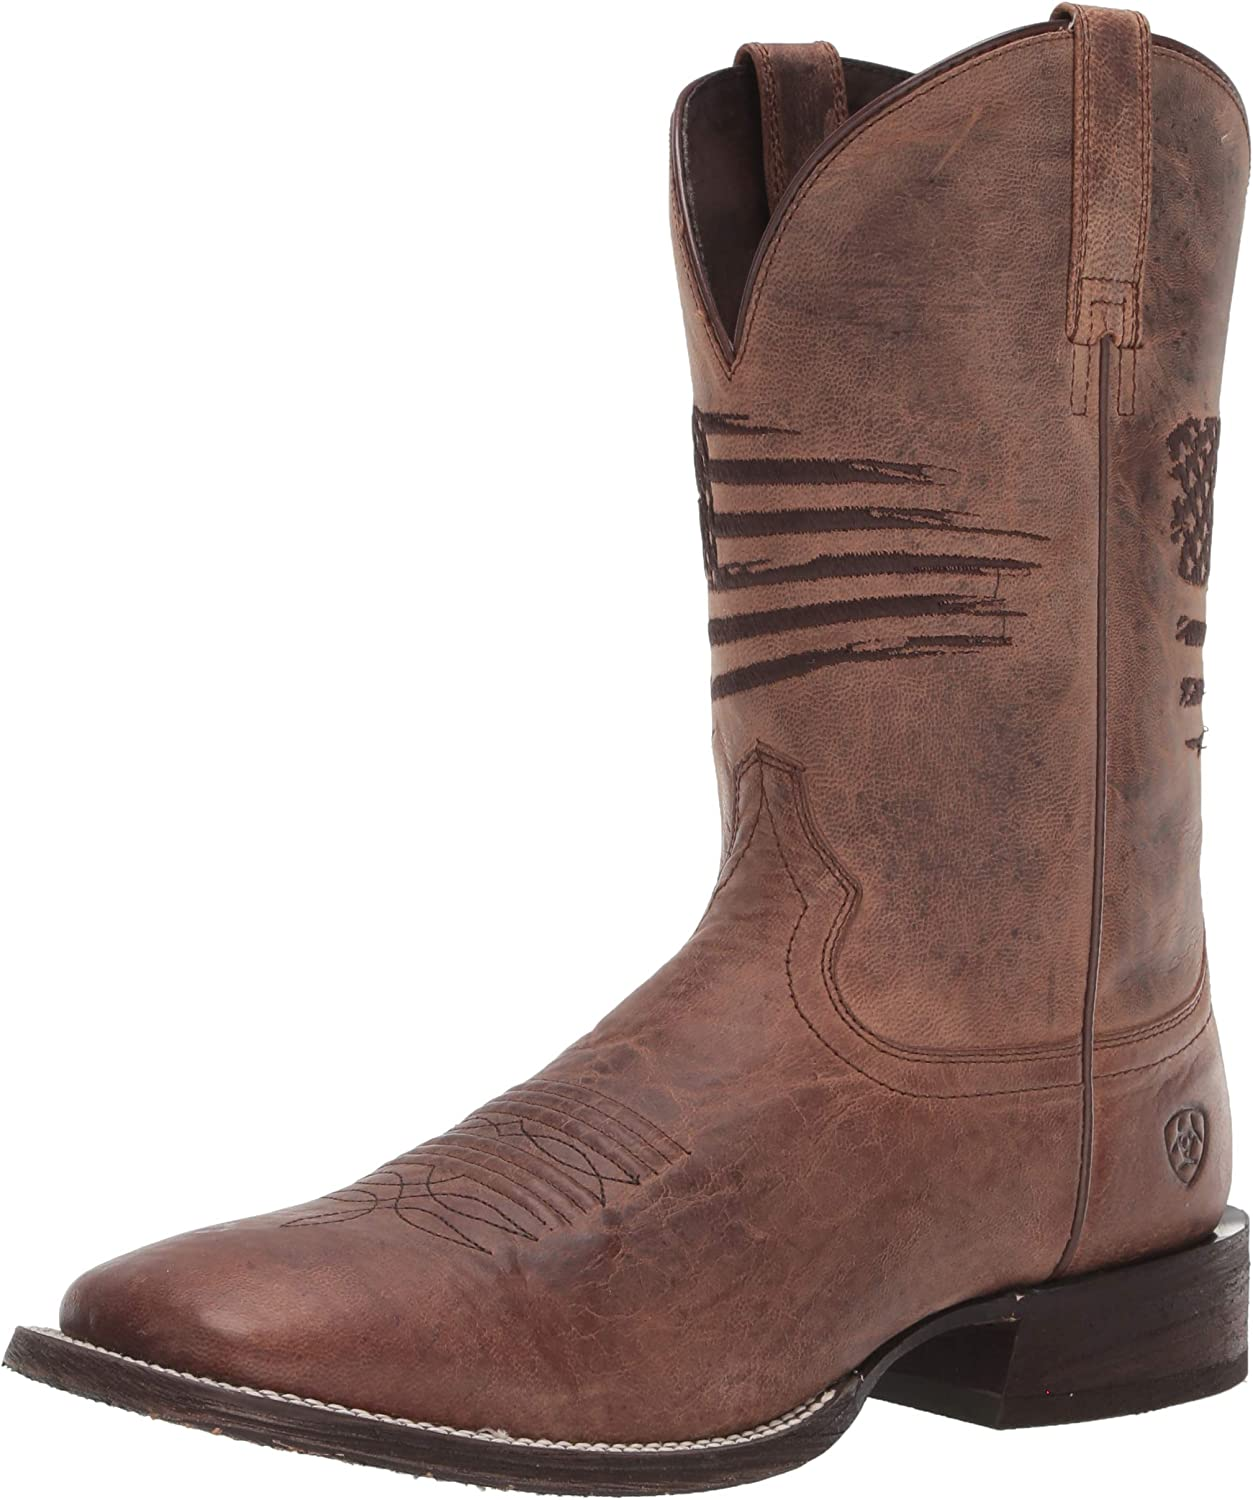 Ariat Circuit Patriot Western San Francisco Mall - Men's Max 50% OFF Boots Leather